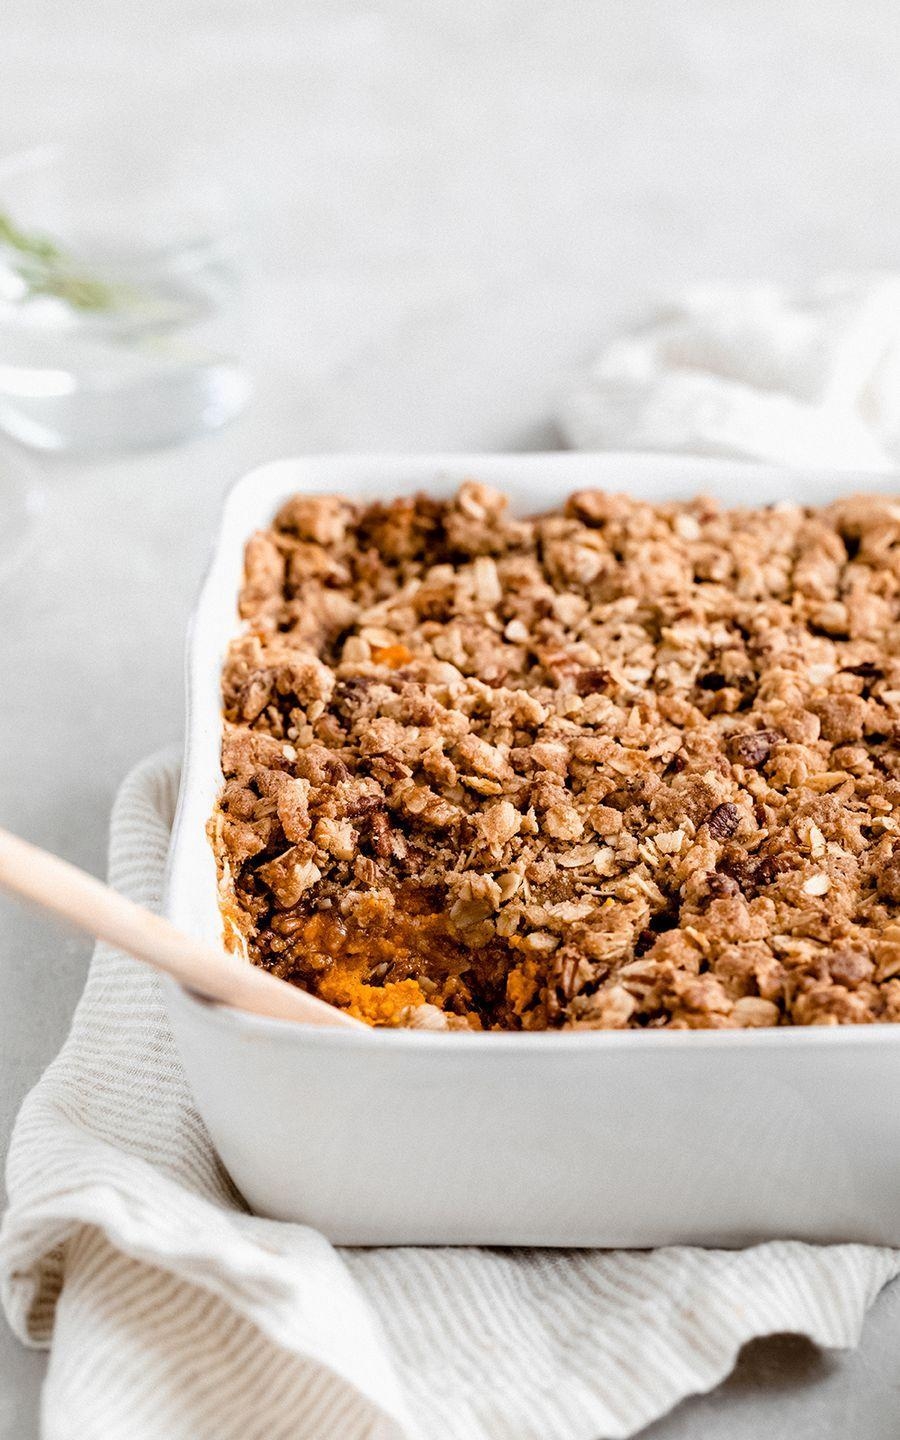 """<p>The textured topping makes this sweet potato casserole a standout. As this blogger writes, """"Who doesn't love a crunchy oat topping?""""</p><p><strong>Get the recipe at <a href=""""https://www.ambitiouskitchen.com/lightened-sweet-potato-casserole-pecan-oat-streusel/"""" rel=""""nofollow noopener"""" target=""""_blank"""" data-ylk=""""slk:Ambitious Kitchen"""" class=""""link rapid-noclick-resp"""">Ambitious Kitchen</a>.</strong> </p>"""